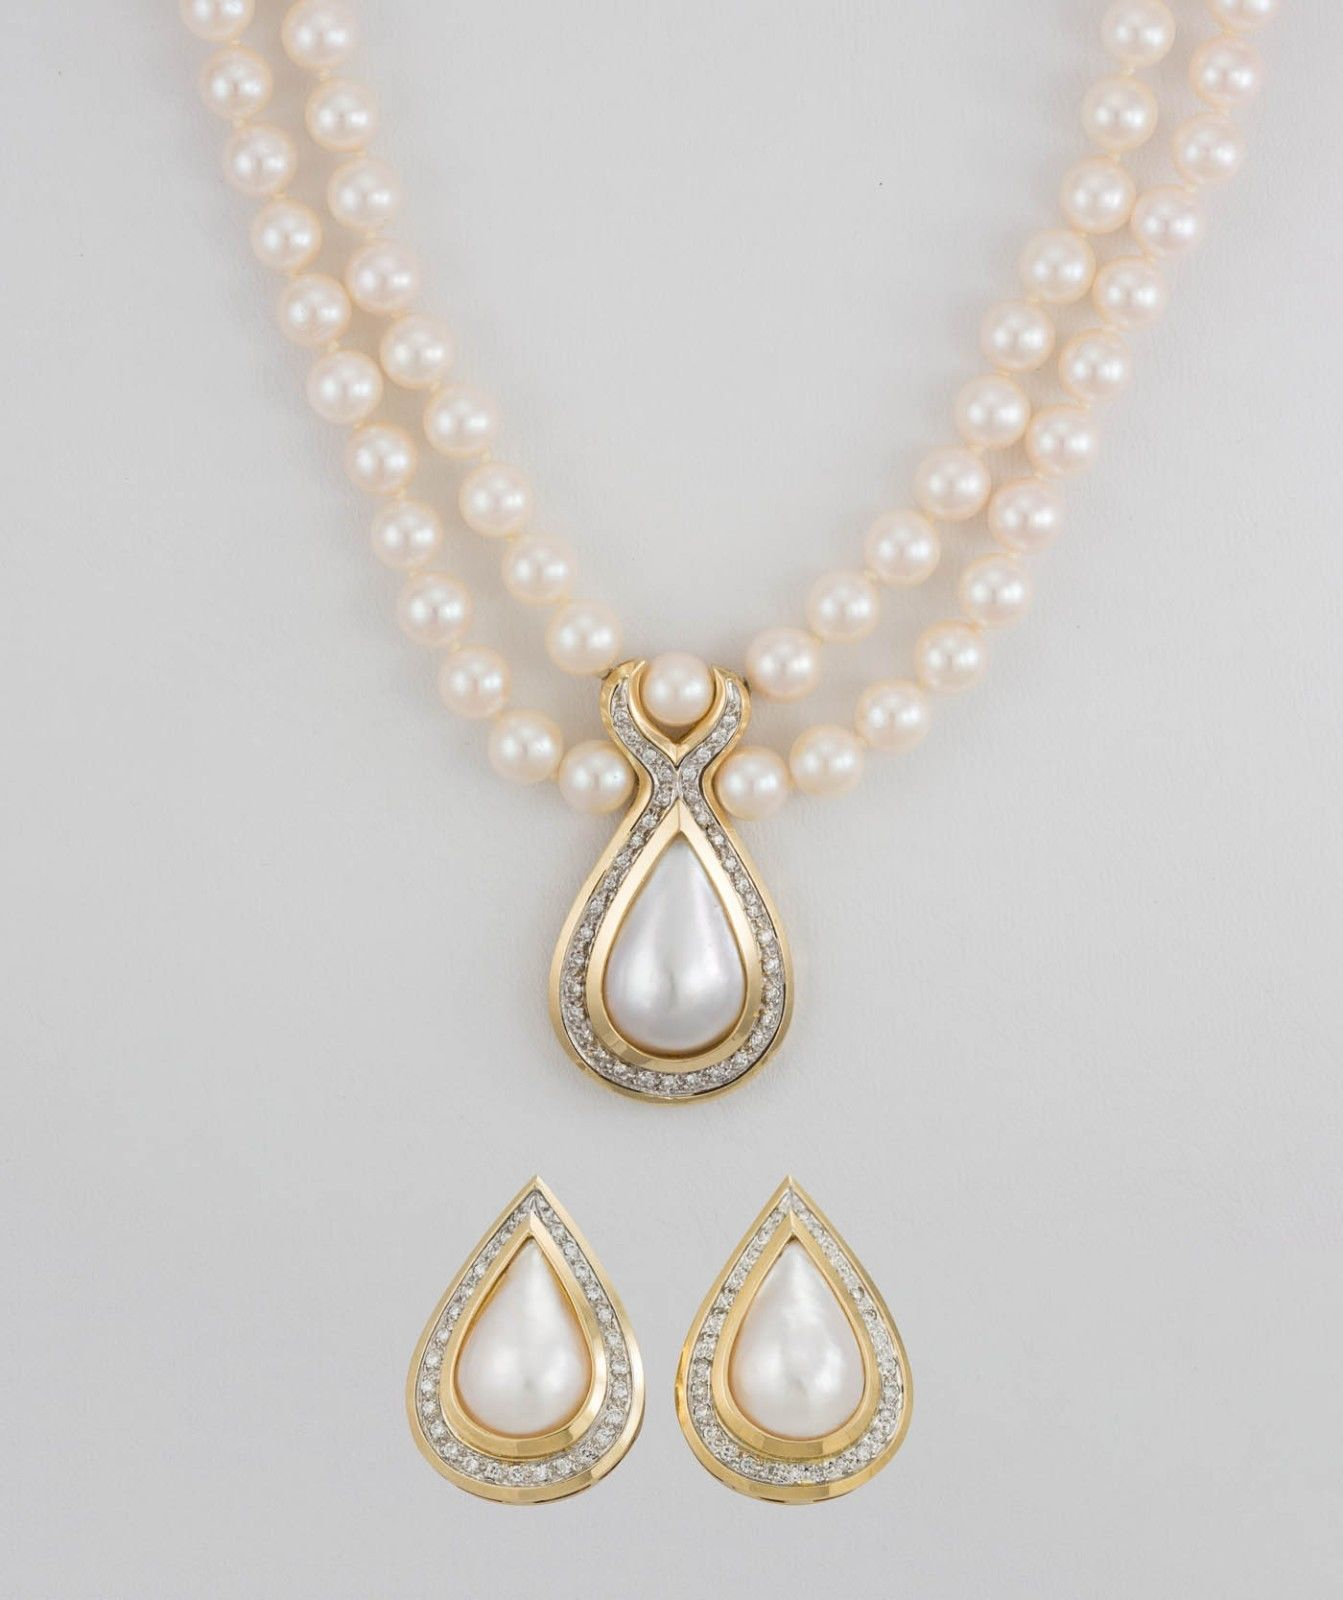 Ladies Pearl Necklace Earring Set W 14k Yellow Gold Diamonds 16